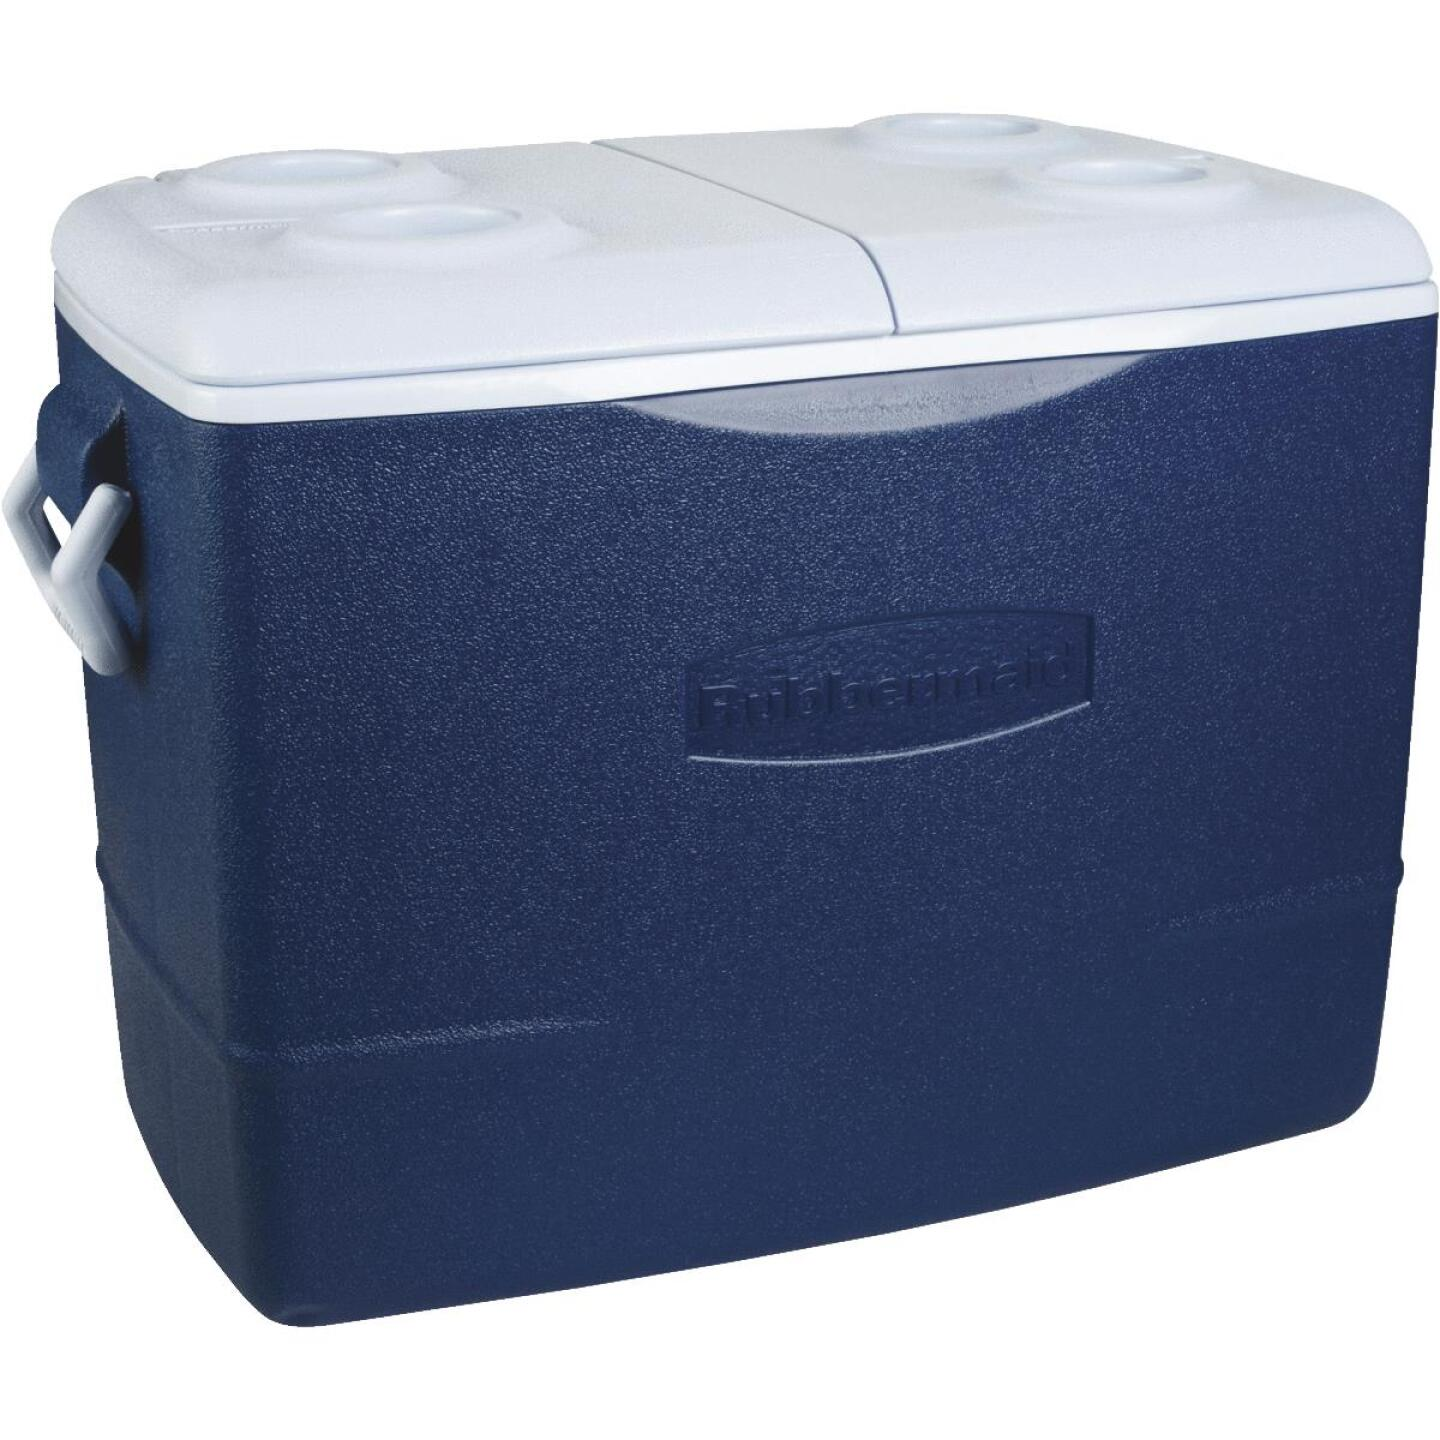 Rubbermaid 50 Qt. Cooler, Blue Image 1